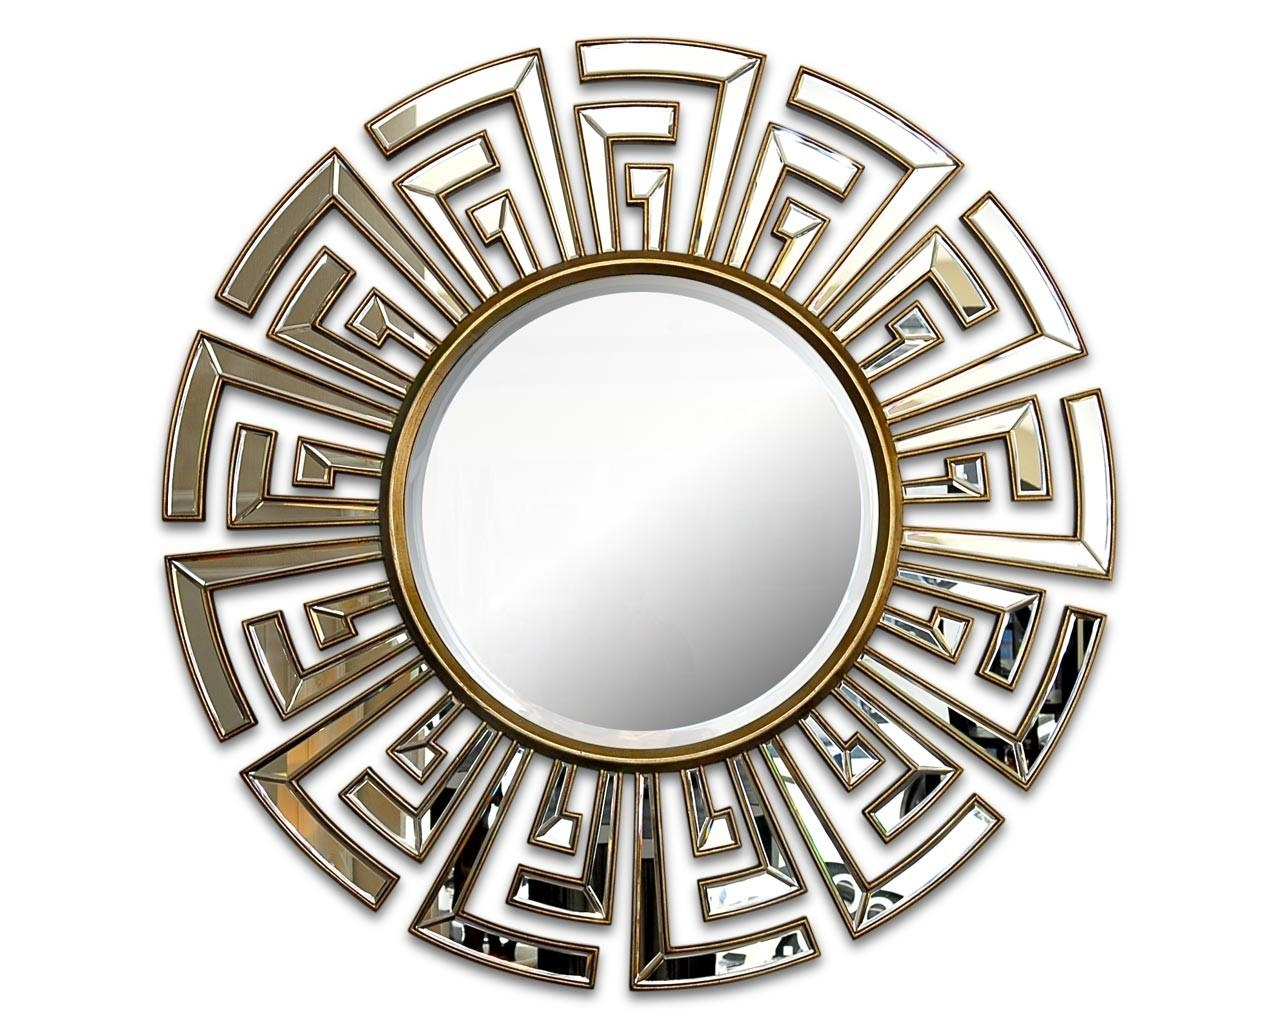 Contemporary Art Deco Round Mirror | Statement Circular Mirrors Regarding Artdeco Mirrors (Image 13 of 20)